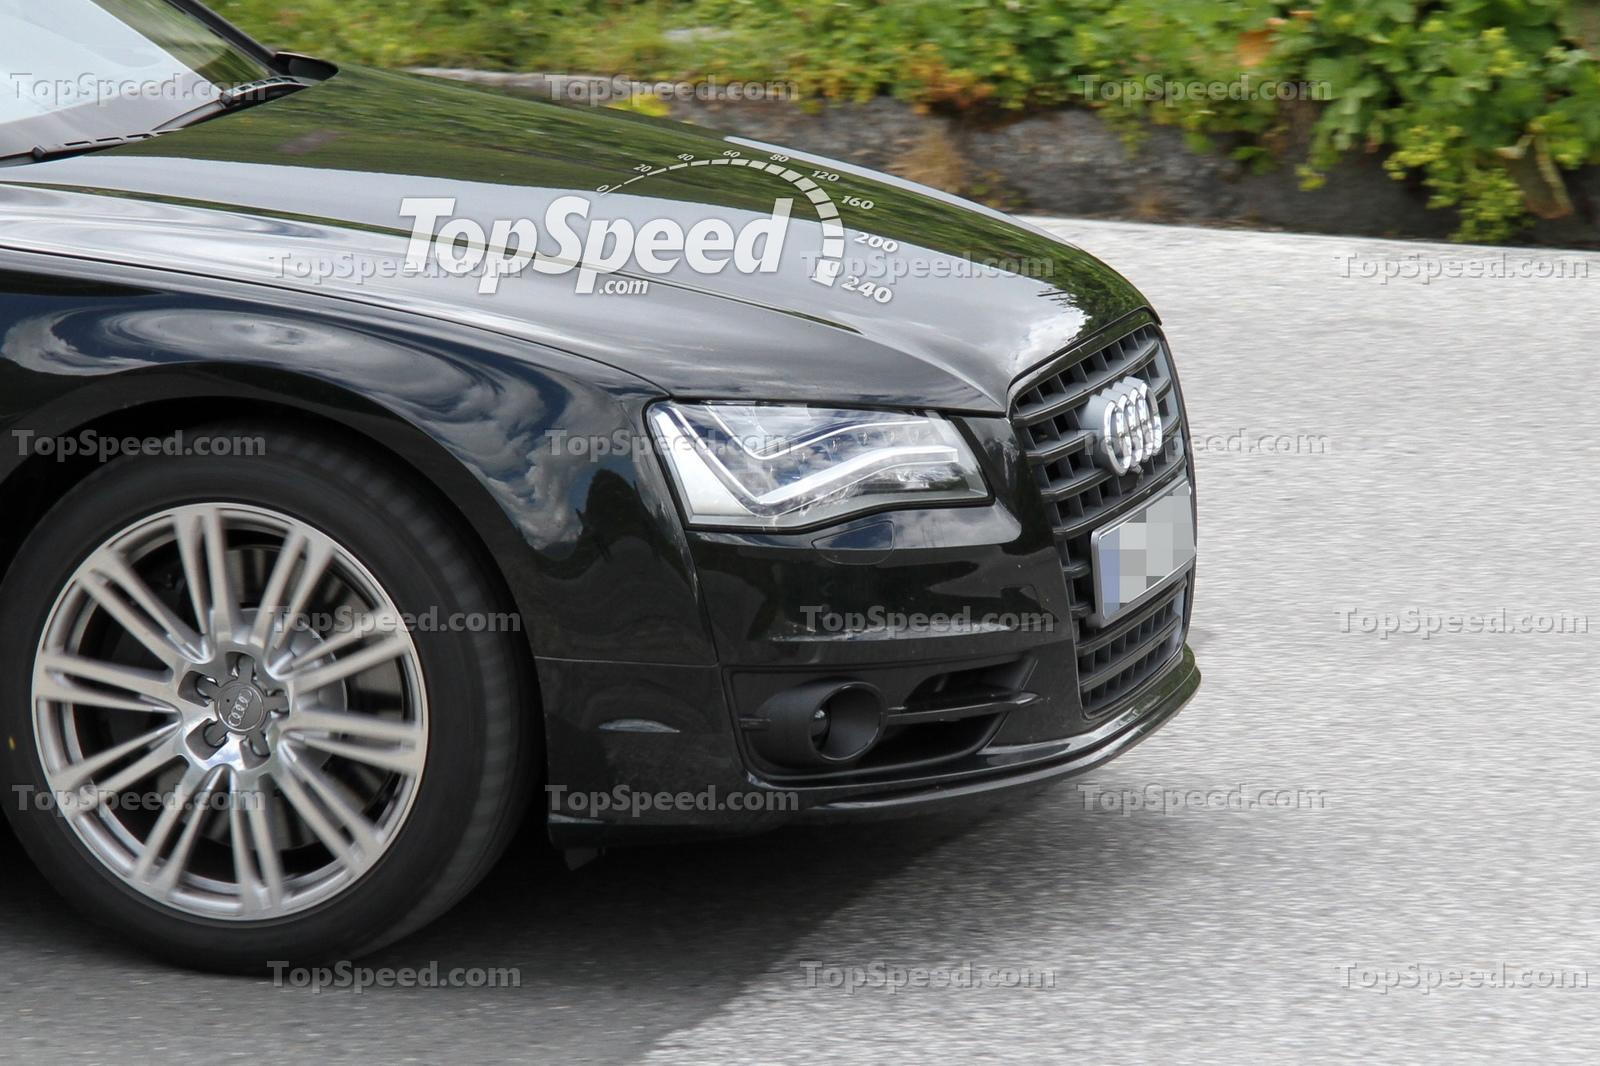 Spied! Audi S8 Caught Naked in the Alps